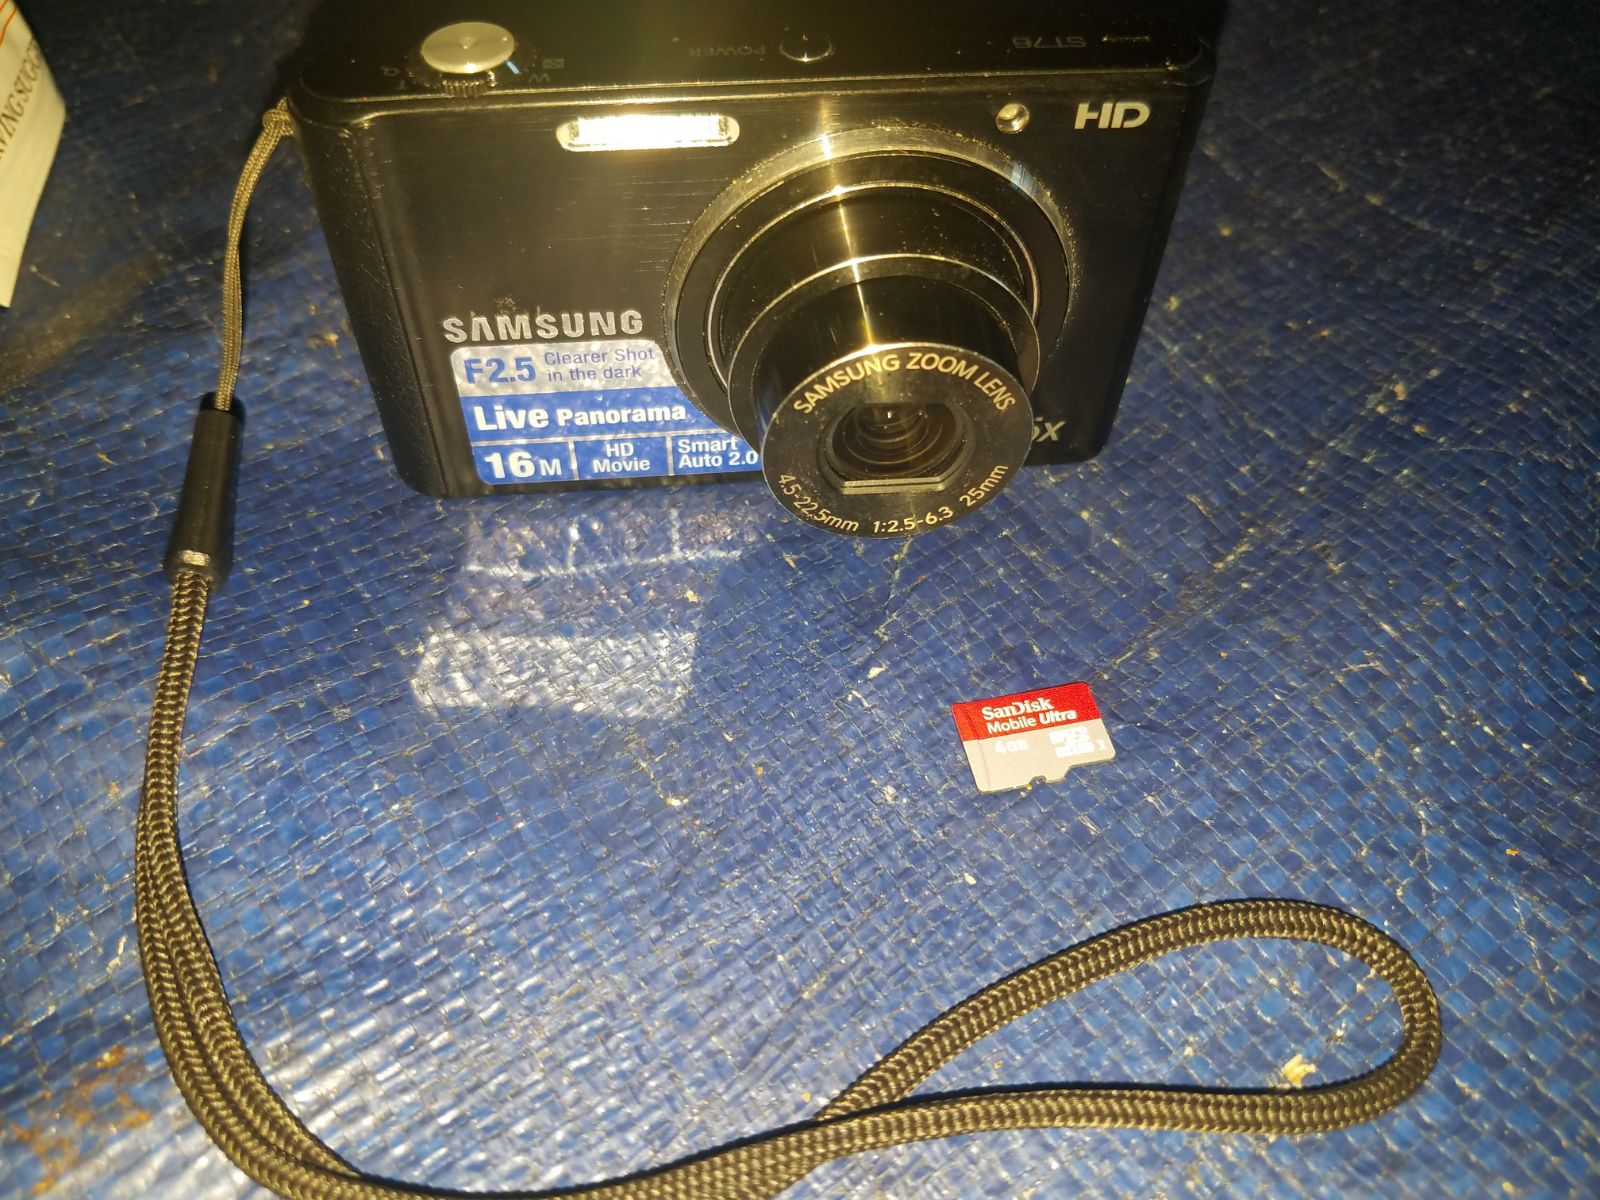 Samsung St76 Camera Works Great + 4gb